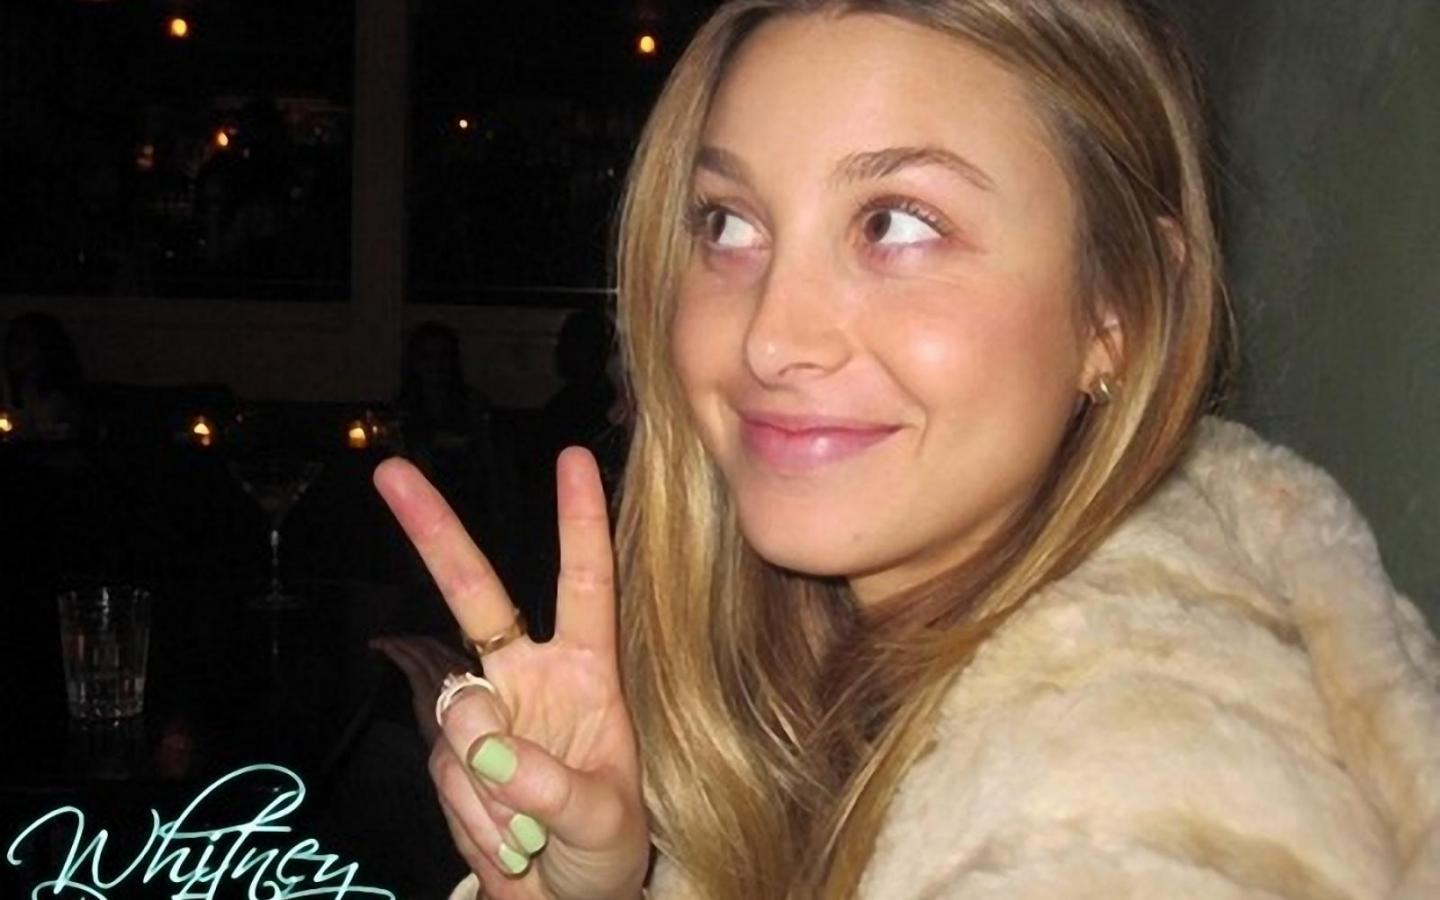 1440x900 - Whitney Port Wallpapers 19